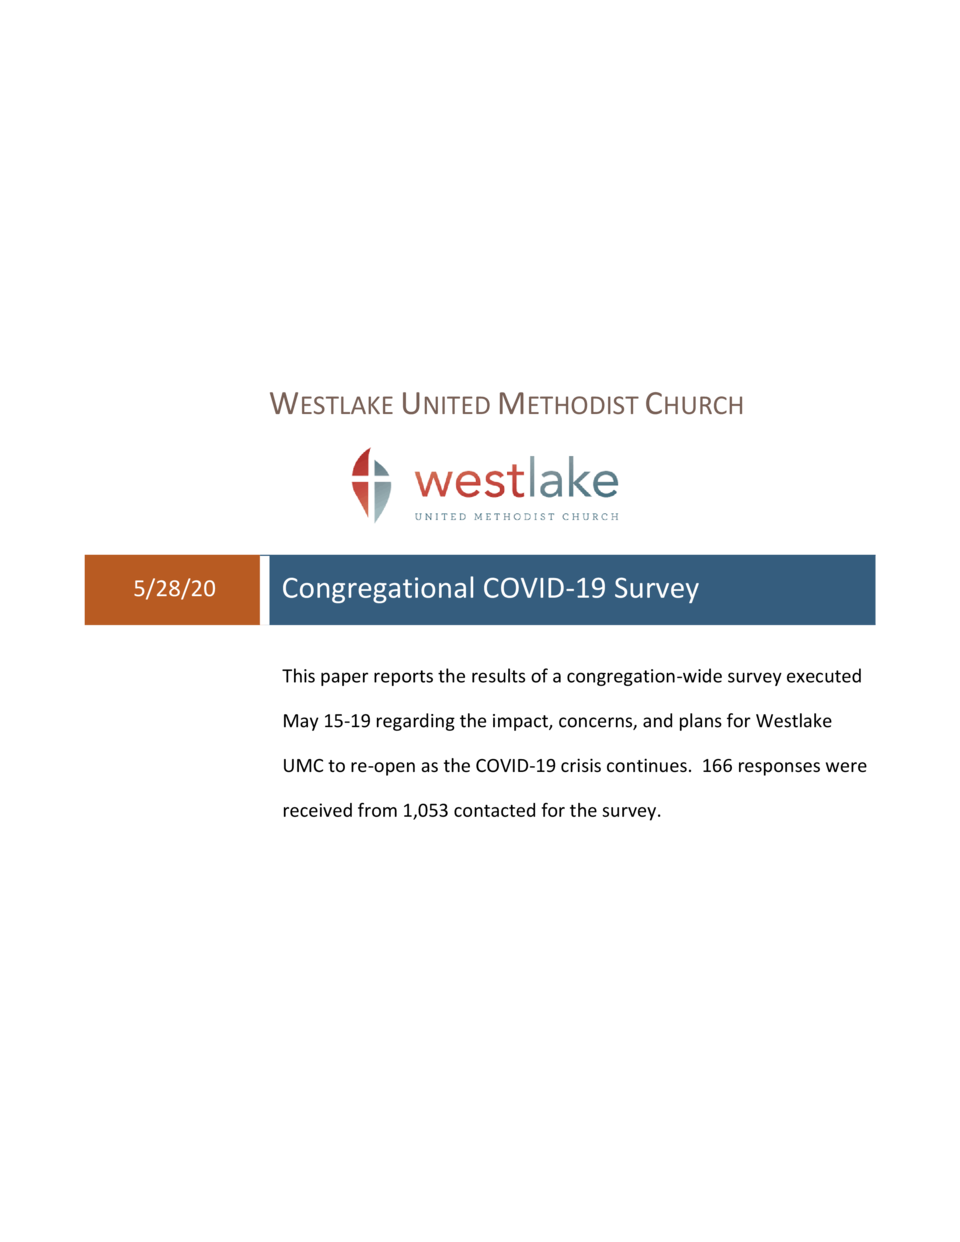 WESTLAKE UNITED METHODIST CHURCH  5 28 20  Congregational COVID-19 Survey This paper reports the results of a congregation...